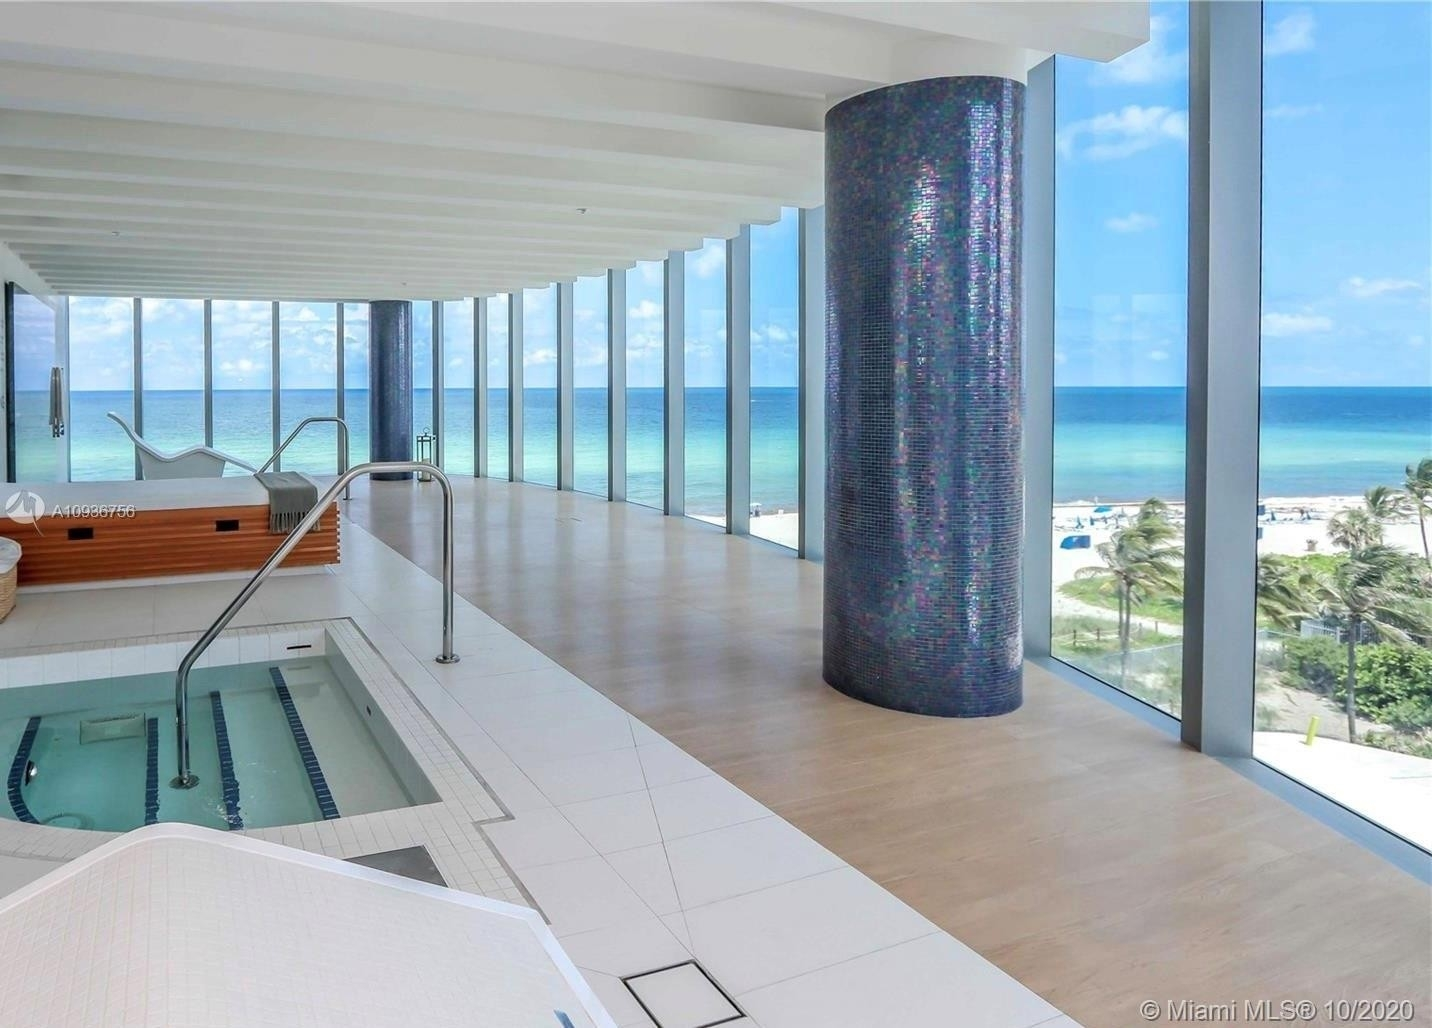 28. Condominiums for Sale at 17475 Collins Ave , 2602 Sunny Isles Beach, FL 33160